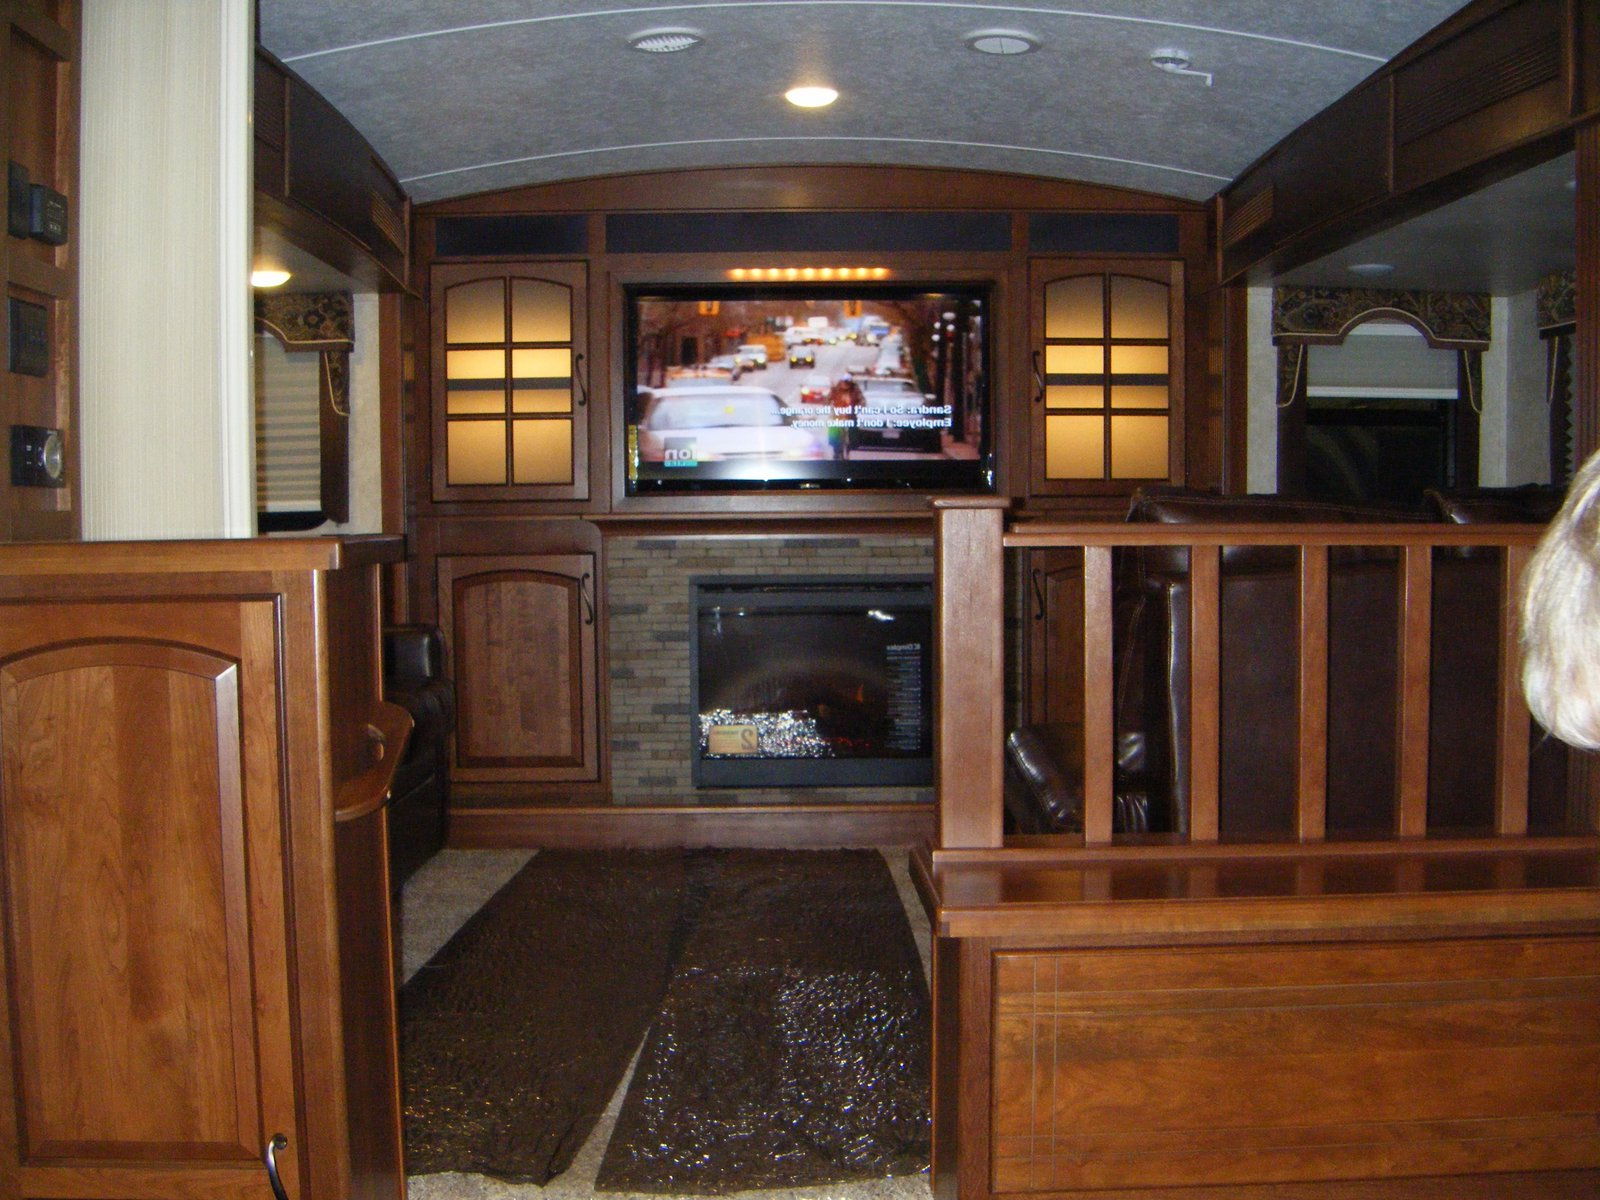 sink cabinet kitchen industrial supplies fifth wheel campers with front living rooms | roy home design